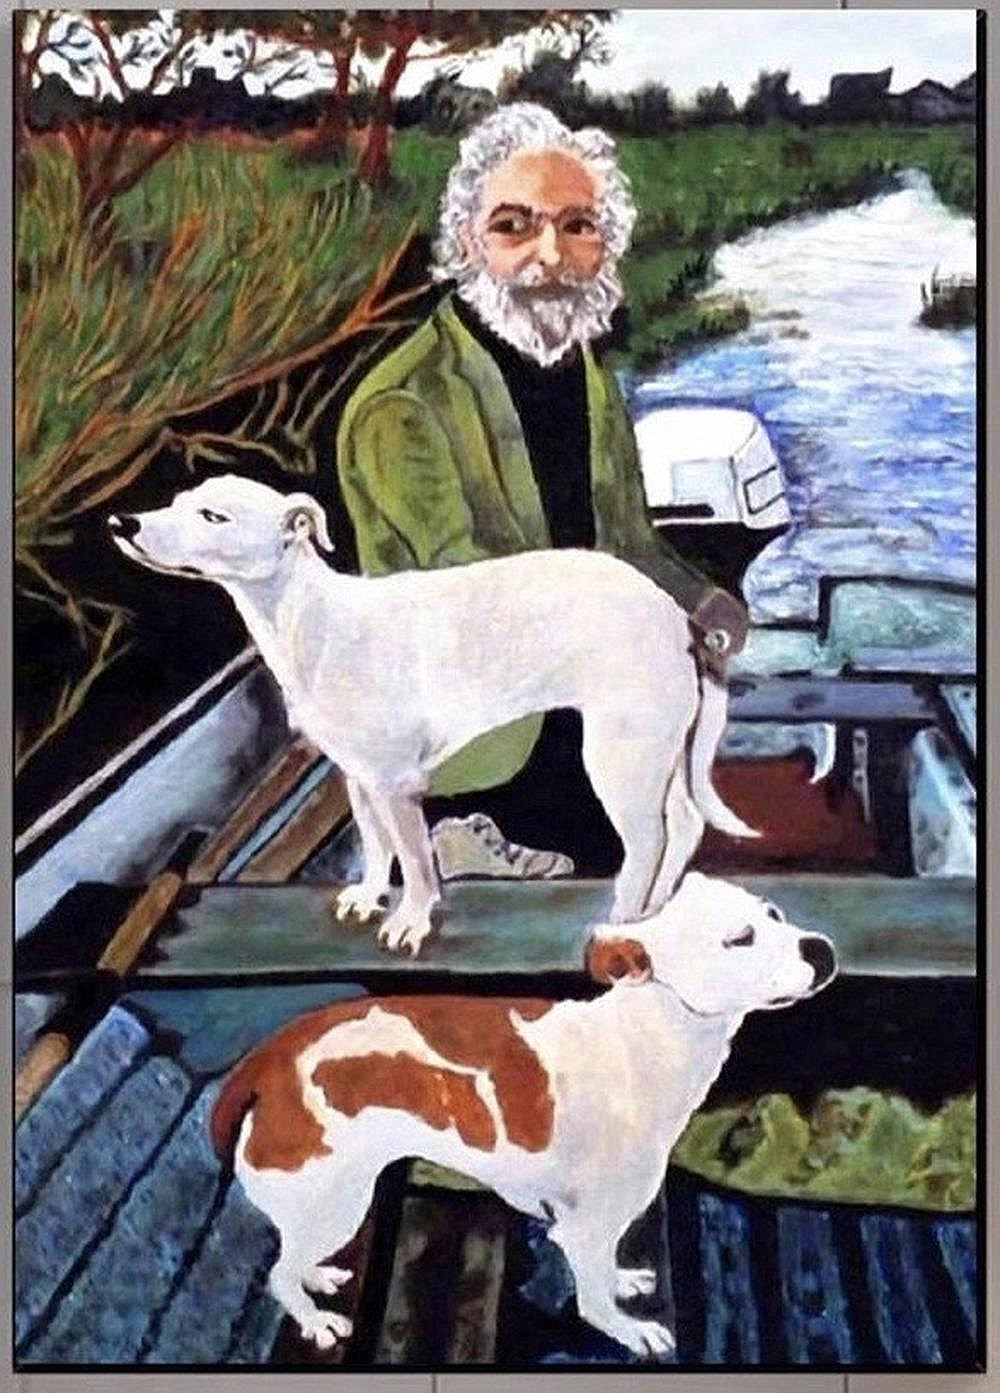 """Nicholas Pileggi's mother painted this portrait of Irish eccentric John Weaving and his two dogs, Brocky and Twiggy. It figures prominently in a scene in """"Goodfellas"""" that features director Martin Scorsese's mother, Catherine."""